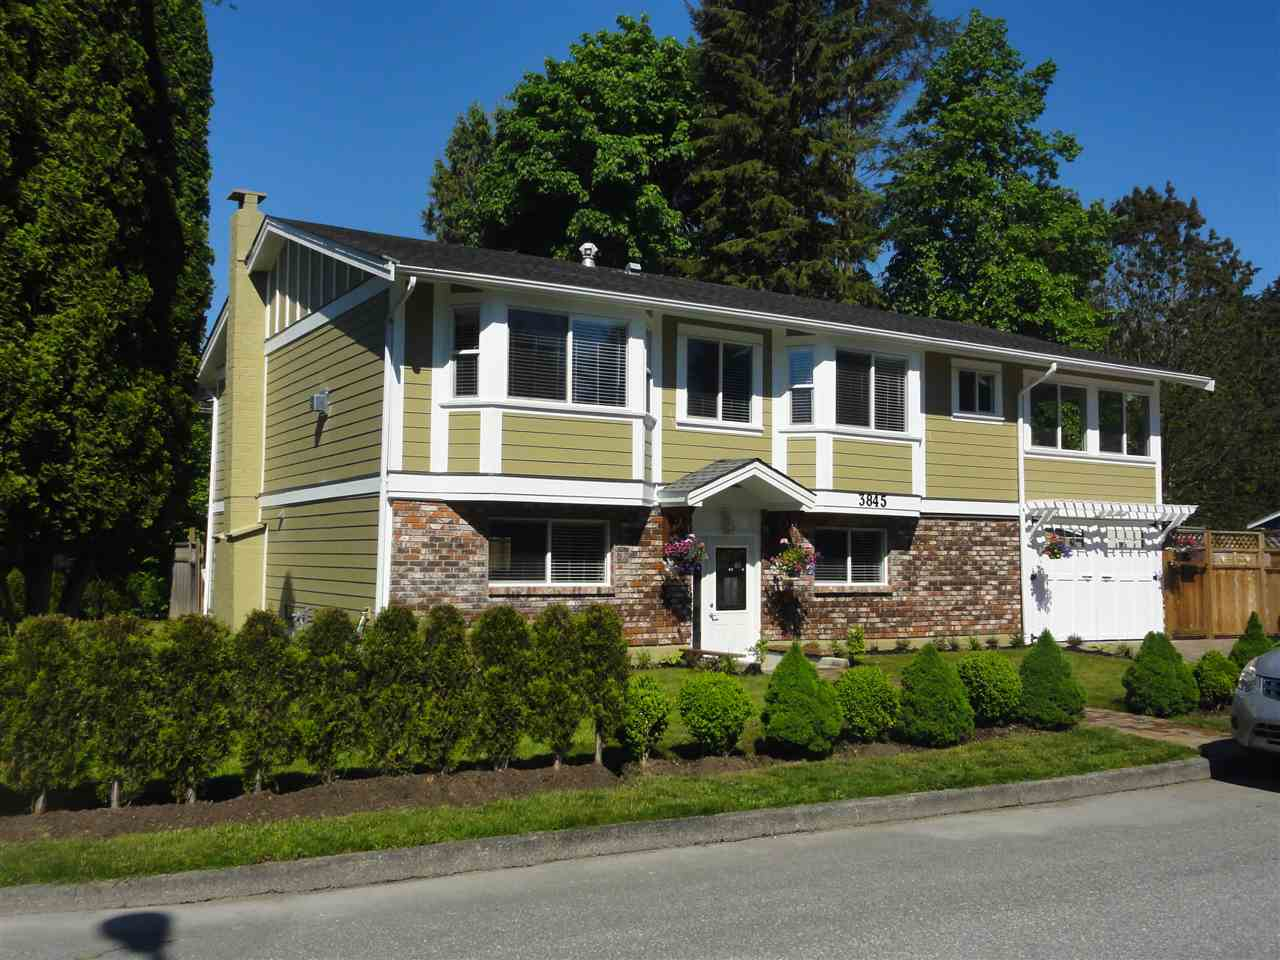 3845 RICHMOND STREET, Port Coquitlam